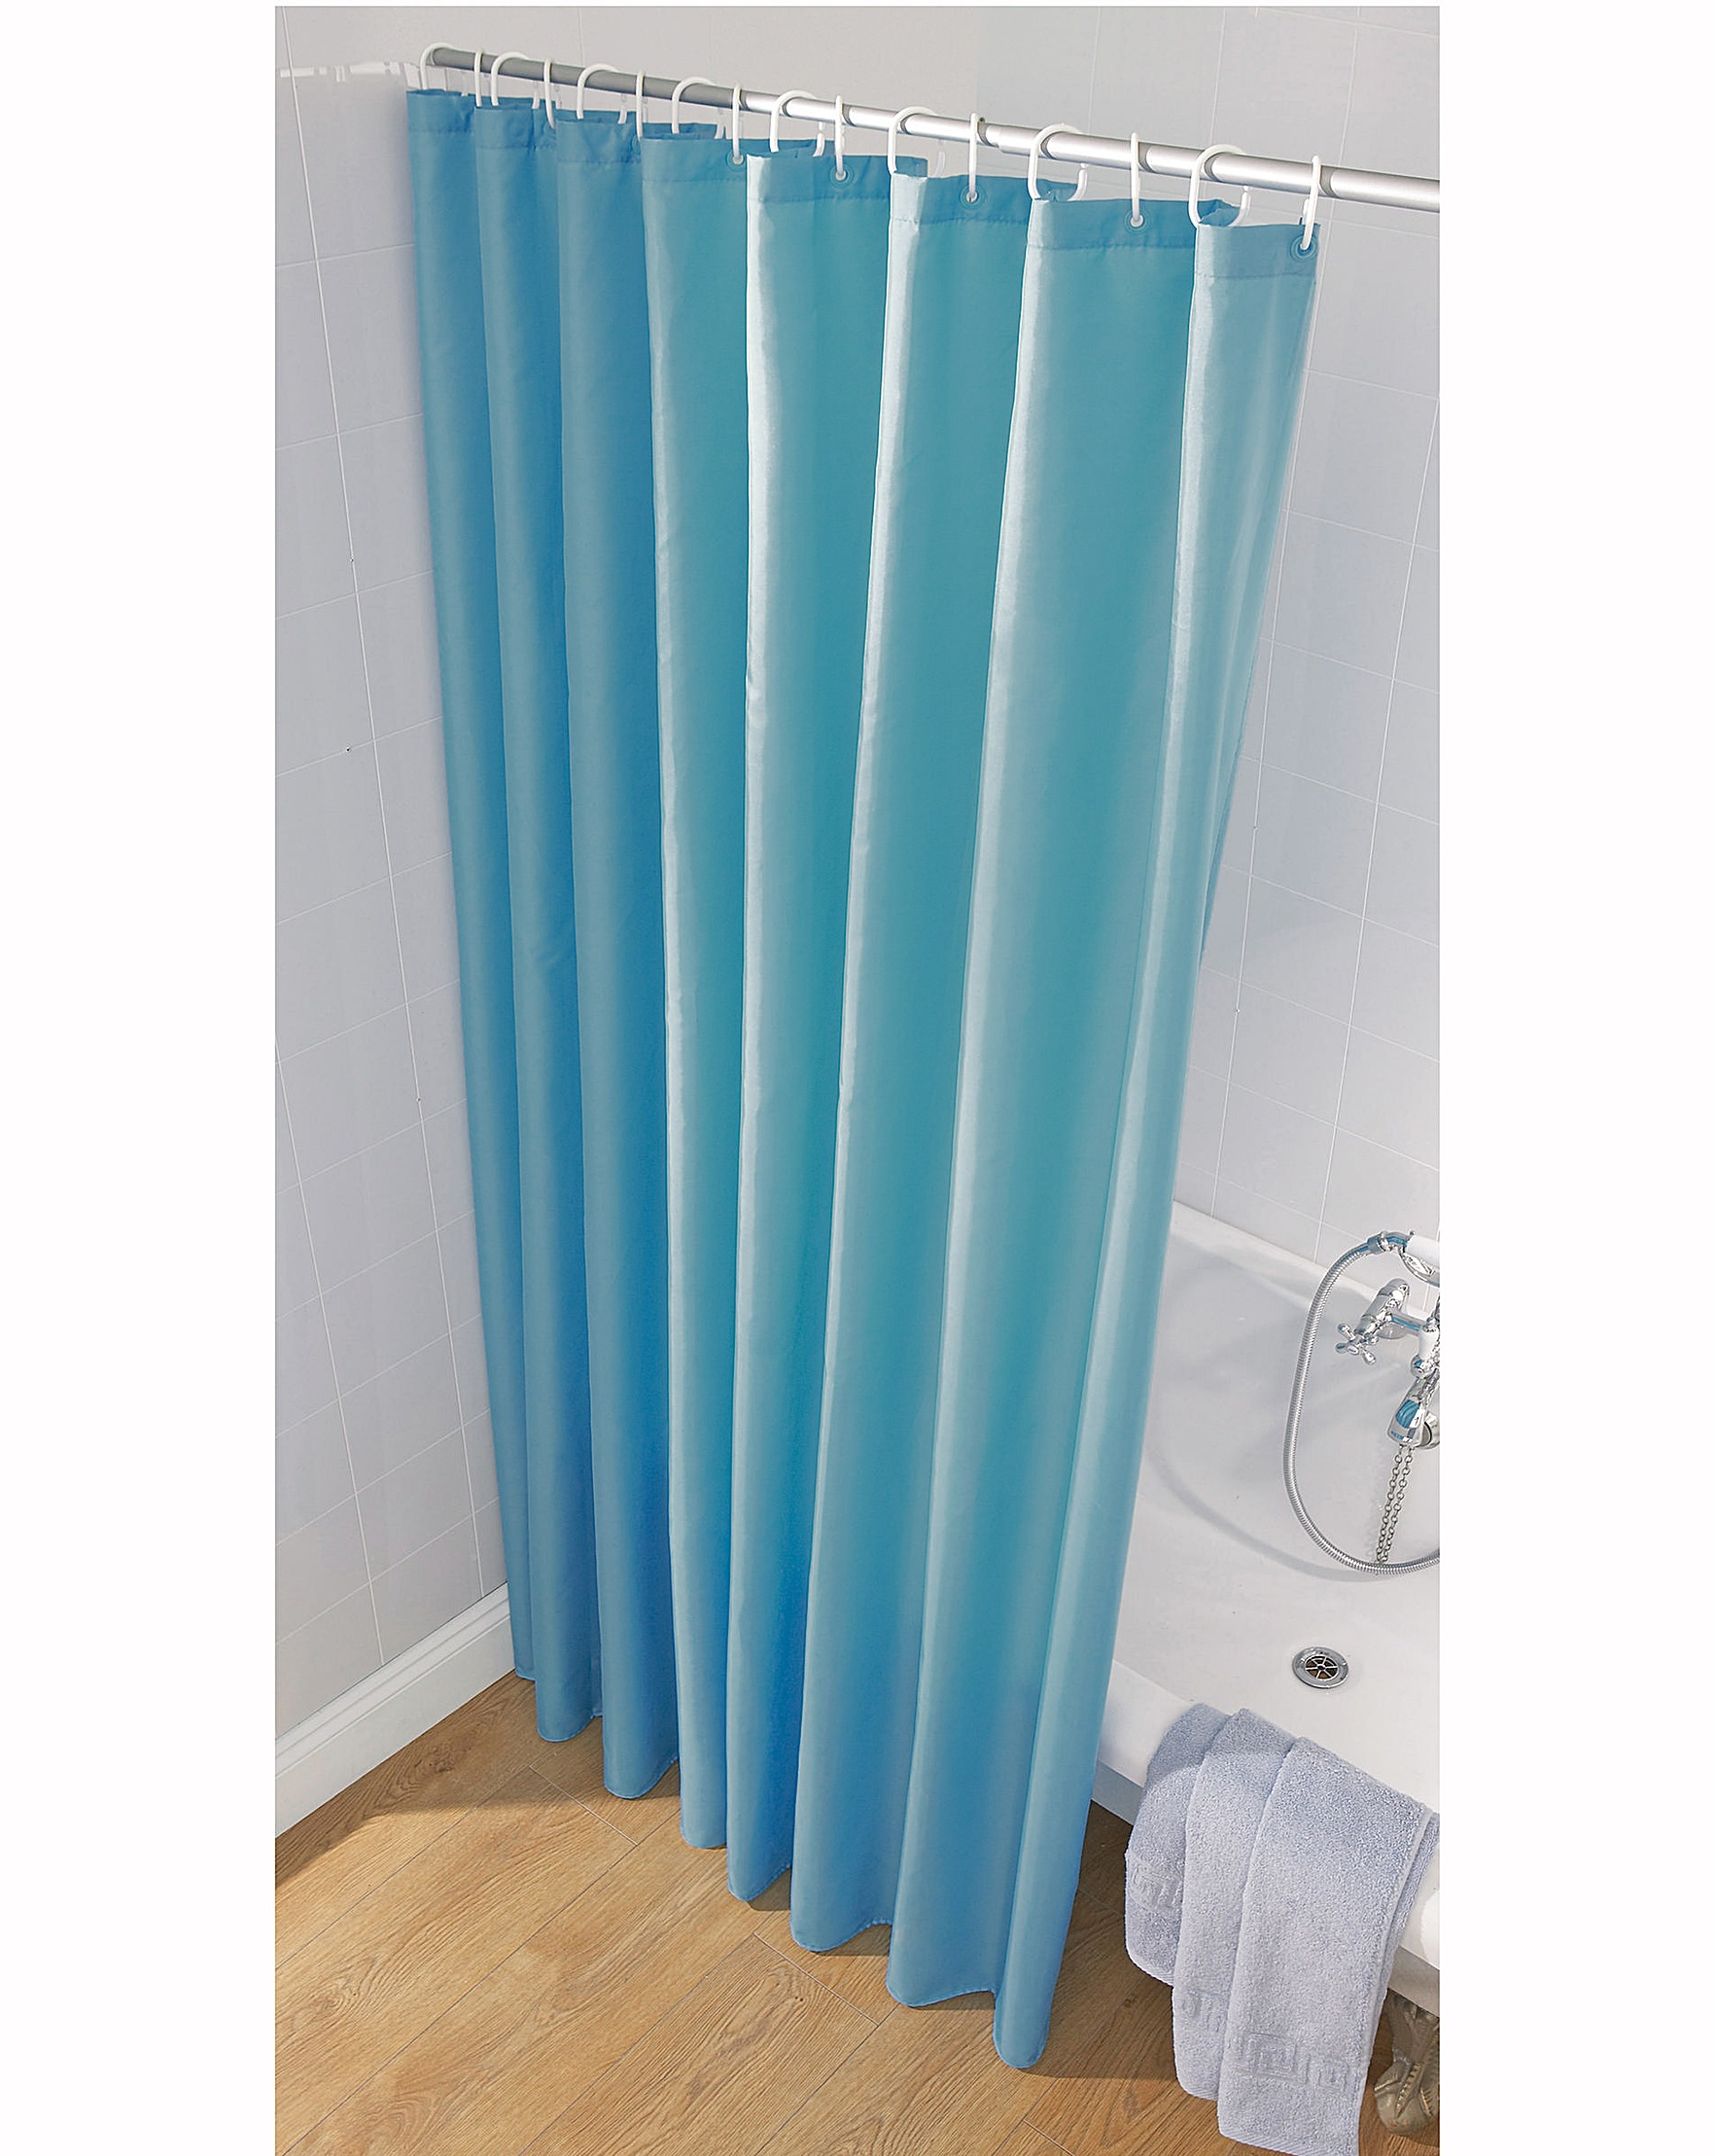 ikea length textiles gb rugs be en the can long curtains innaren cut desired products easily shower white curtain to